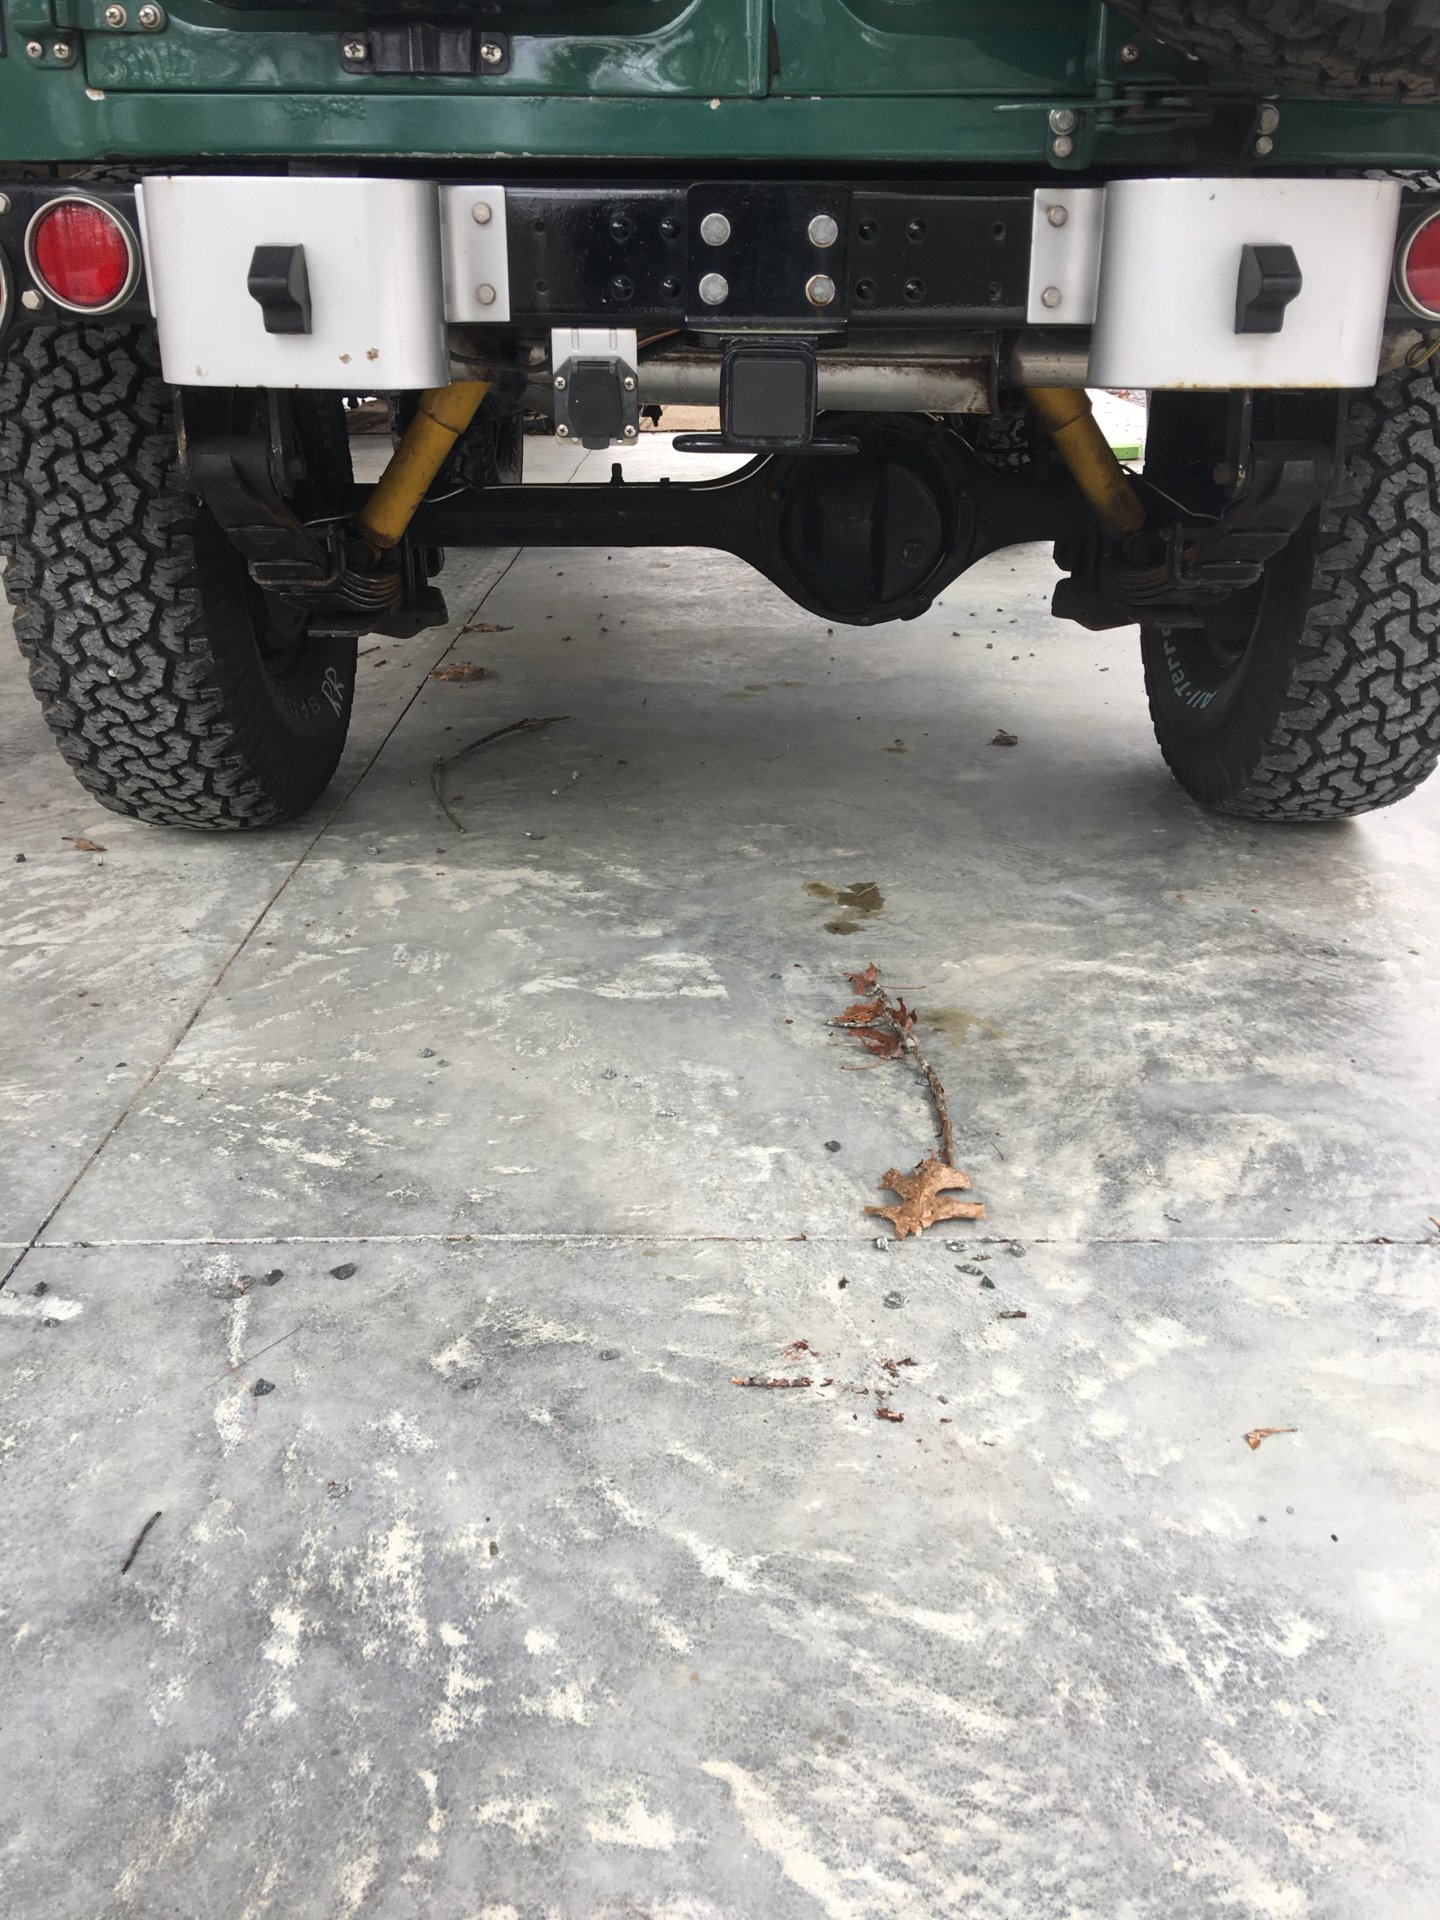 Wanted Early Fj40 Rear Step Ih8mud Forum - Imagez co